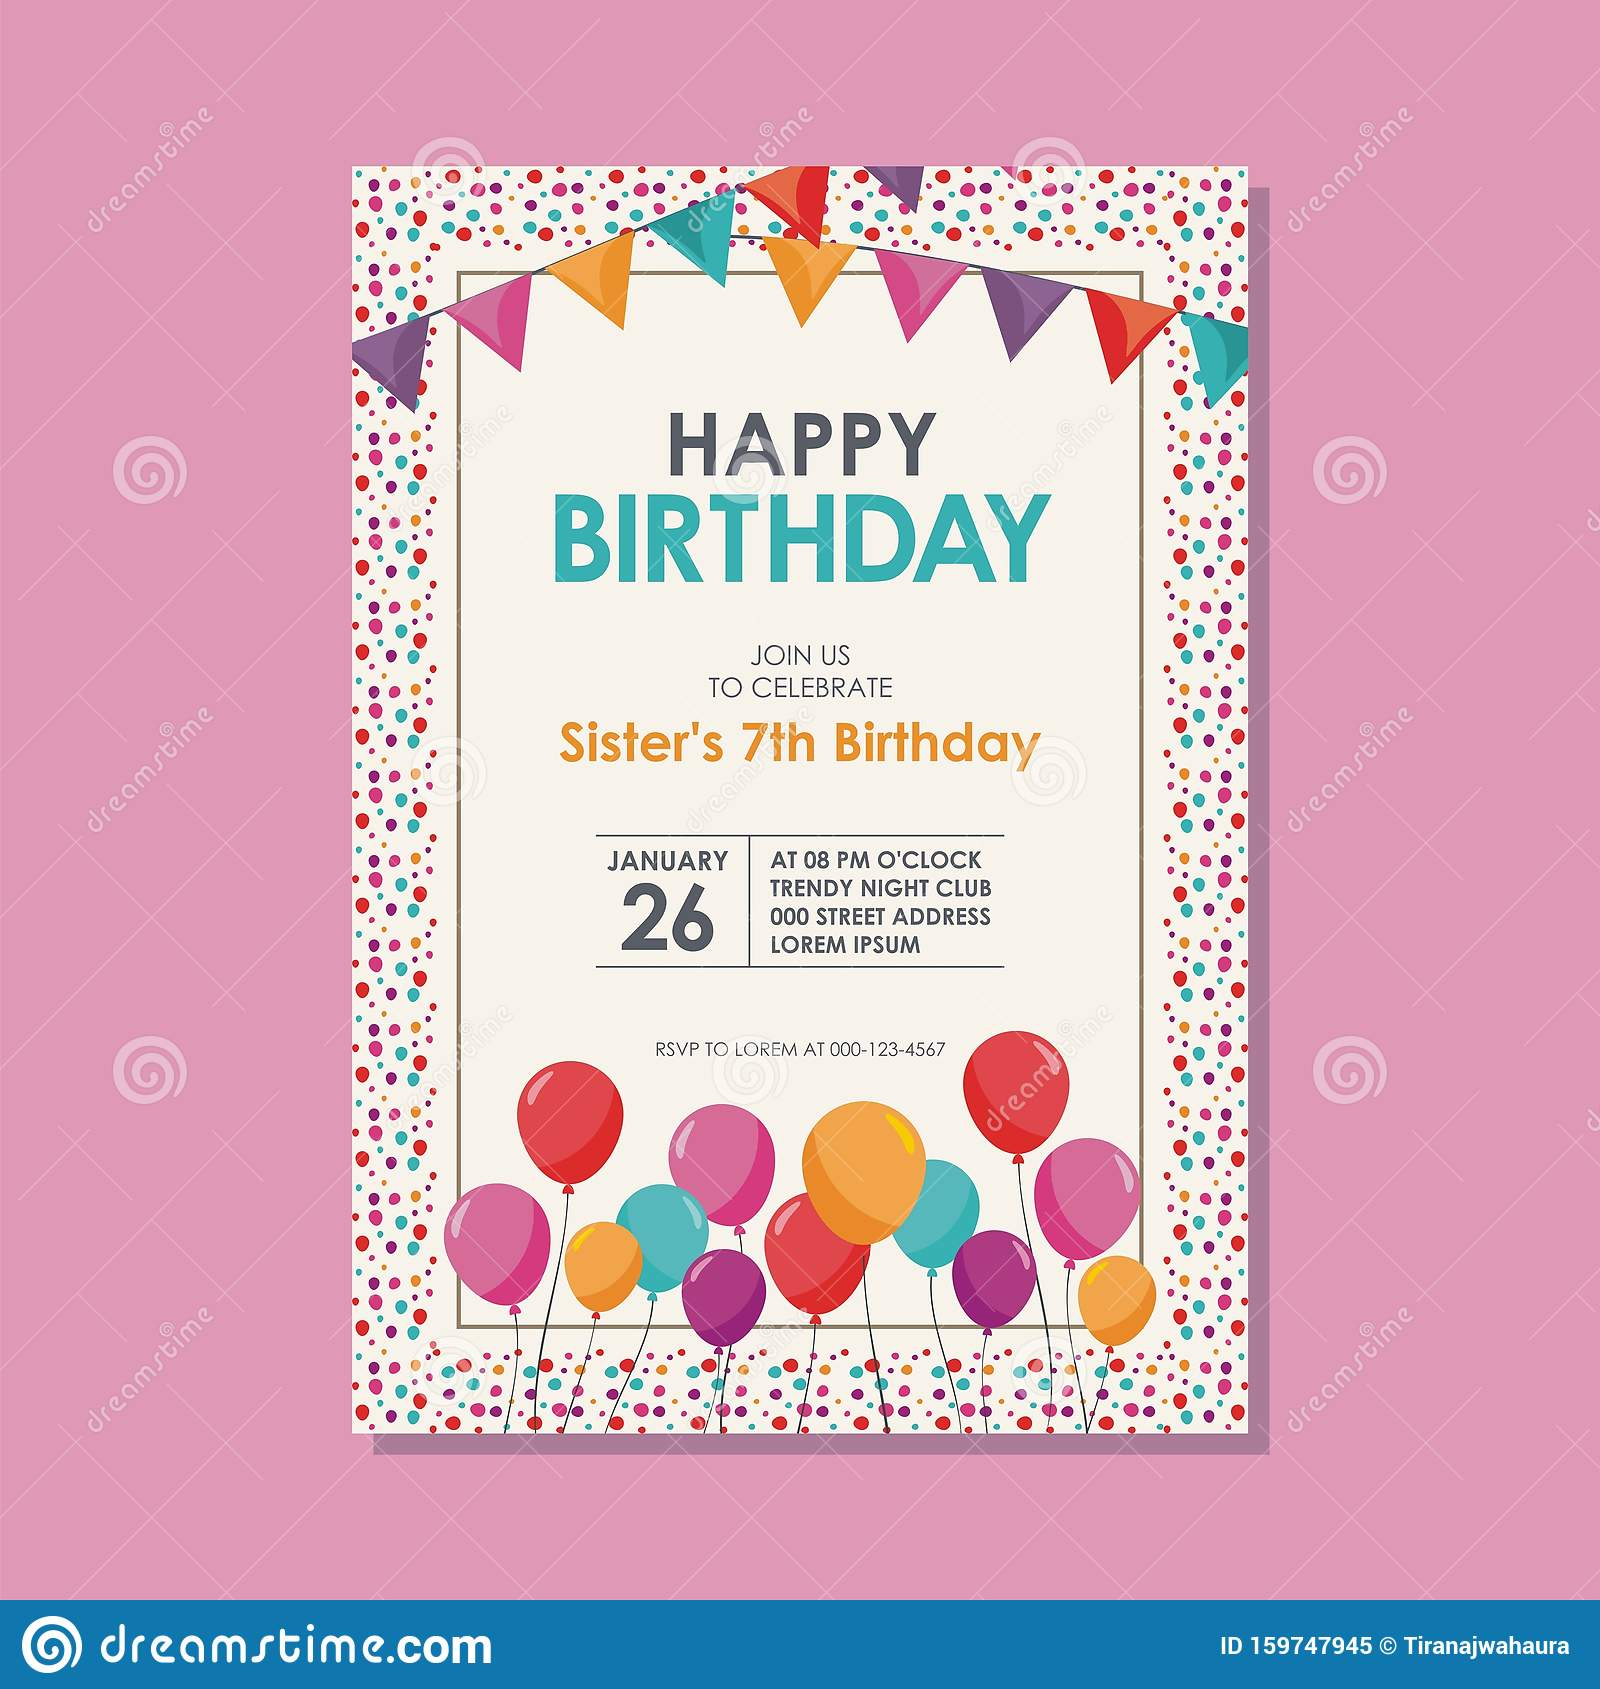 Magnificent Happy Birthday Card Template Design With Trendy And Cute Design Funny Birthday Cards Online Fluifree Goldxyz